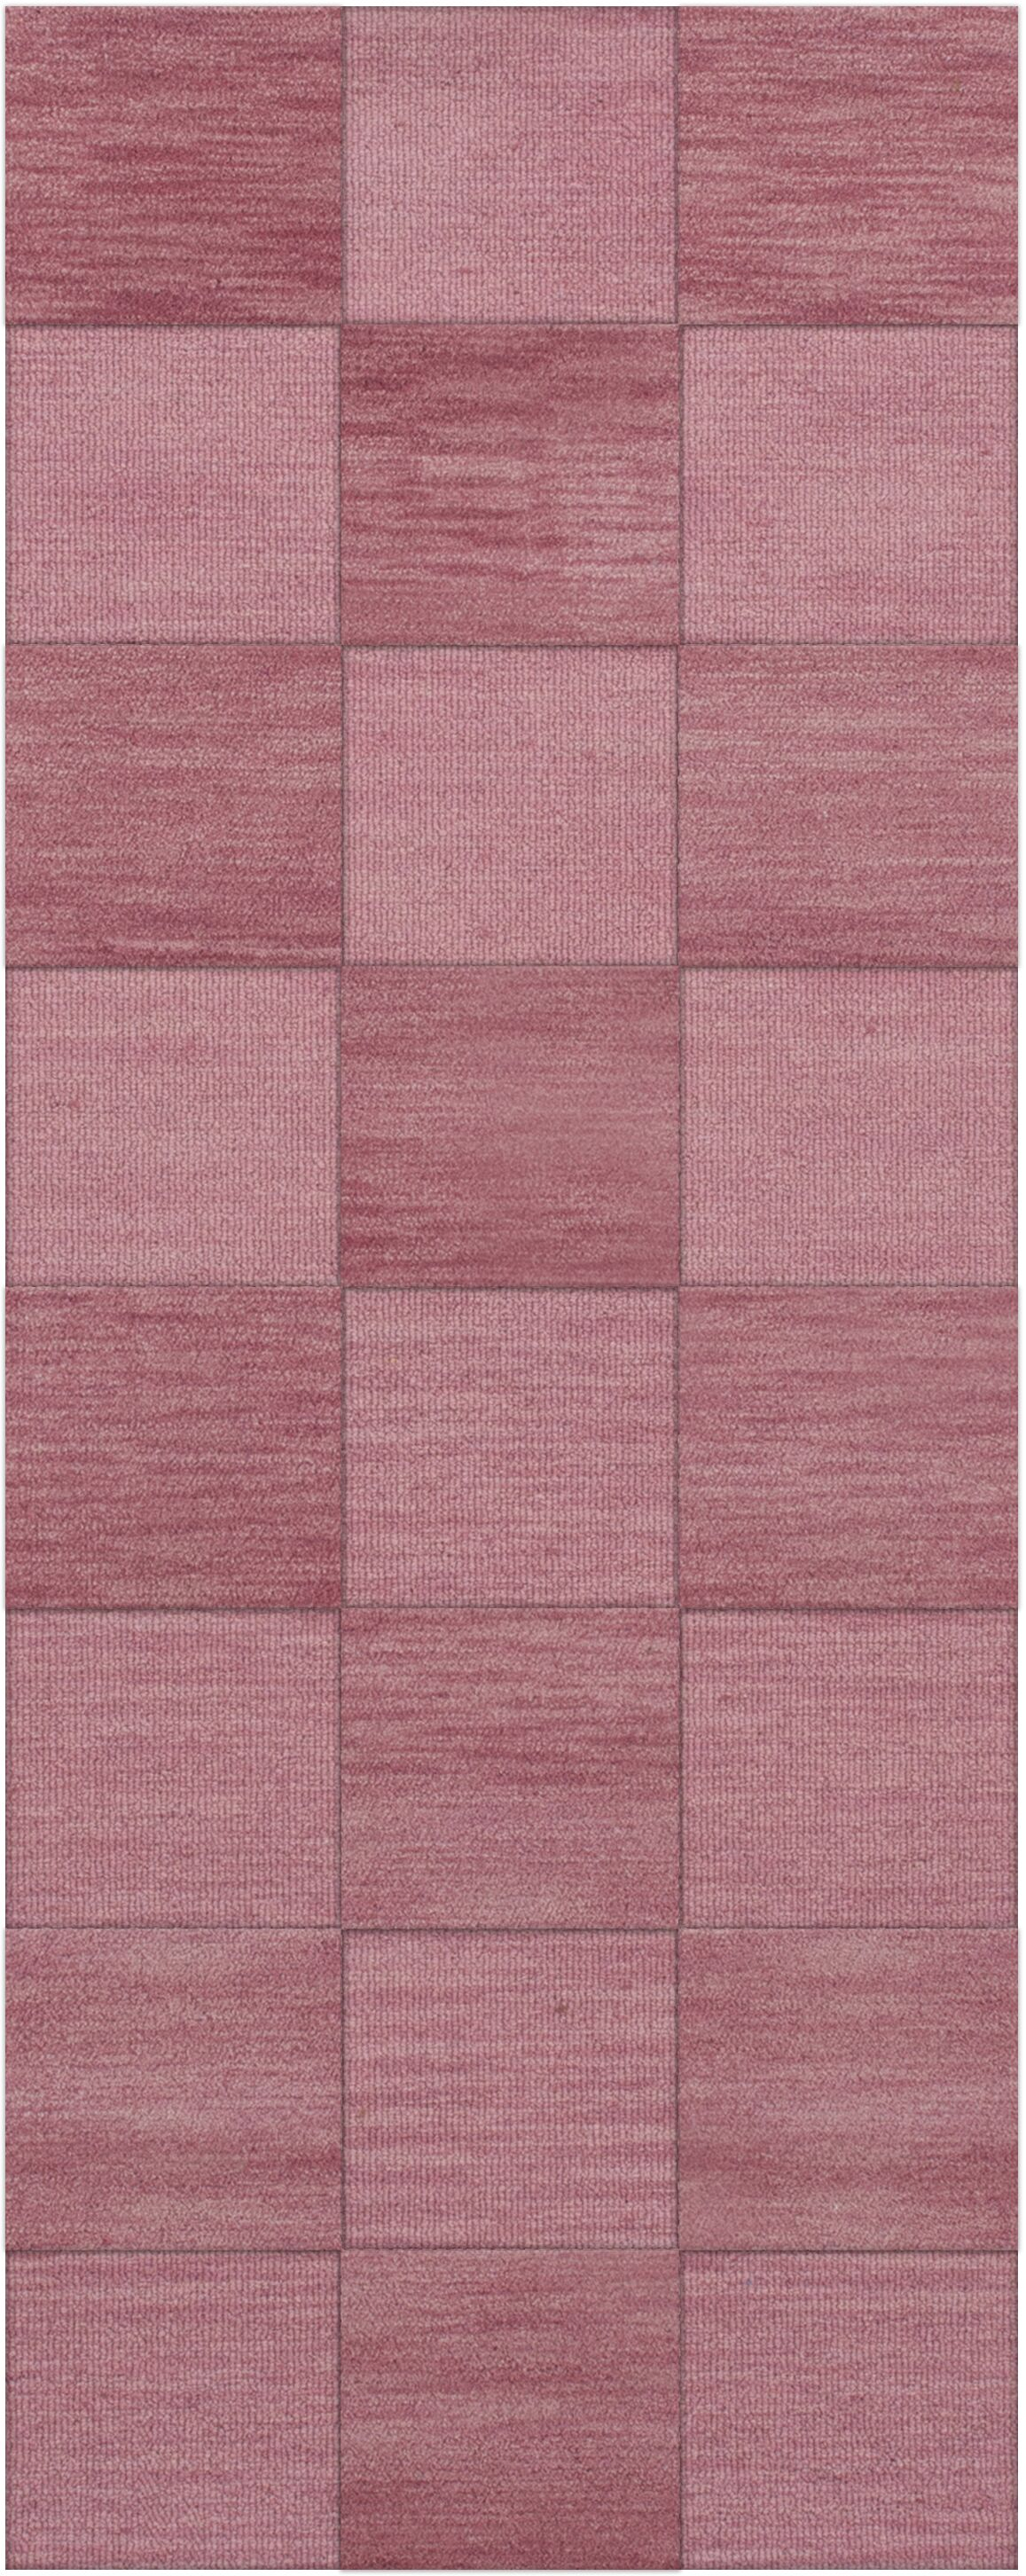 Dover Bubblishous Area Rug Rug Size: Runner 2'6